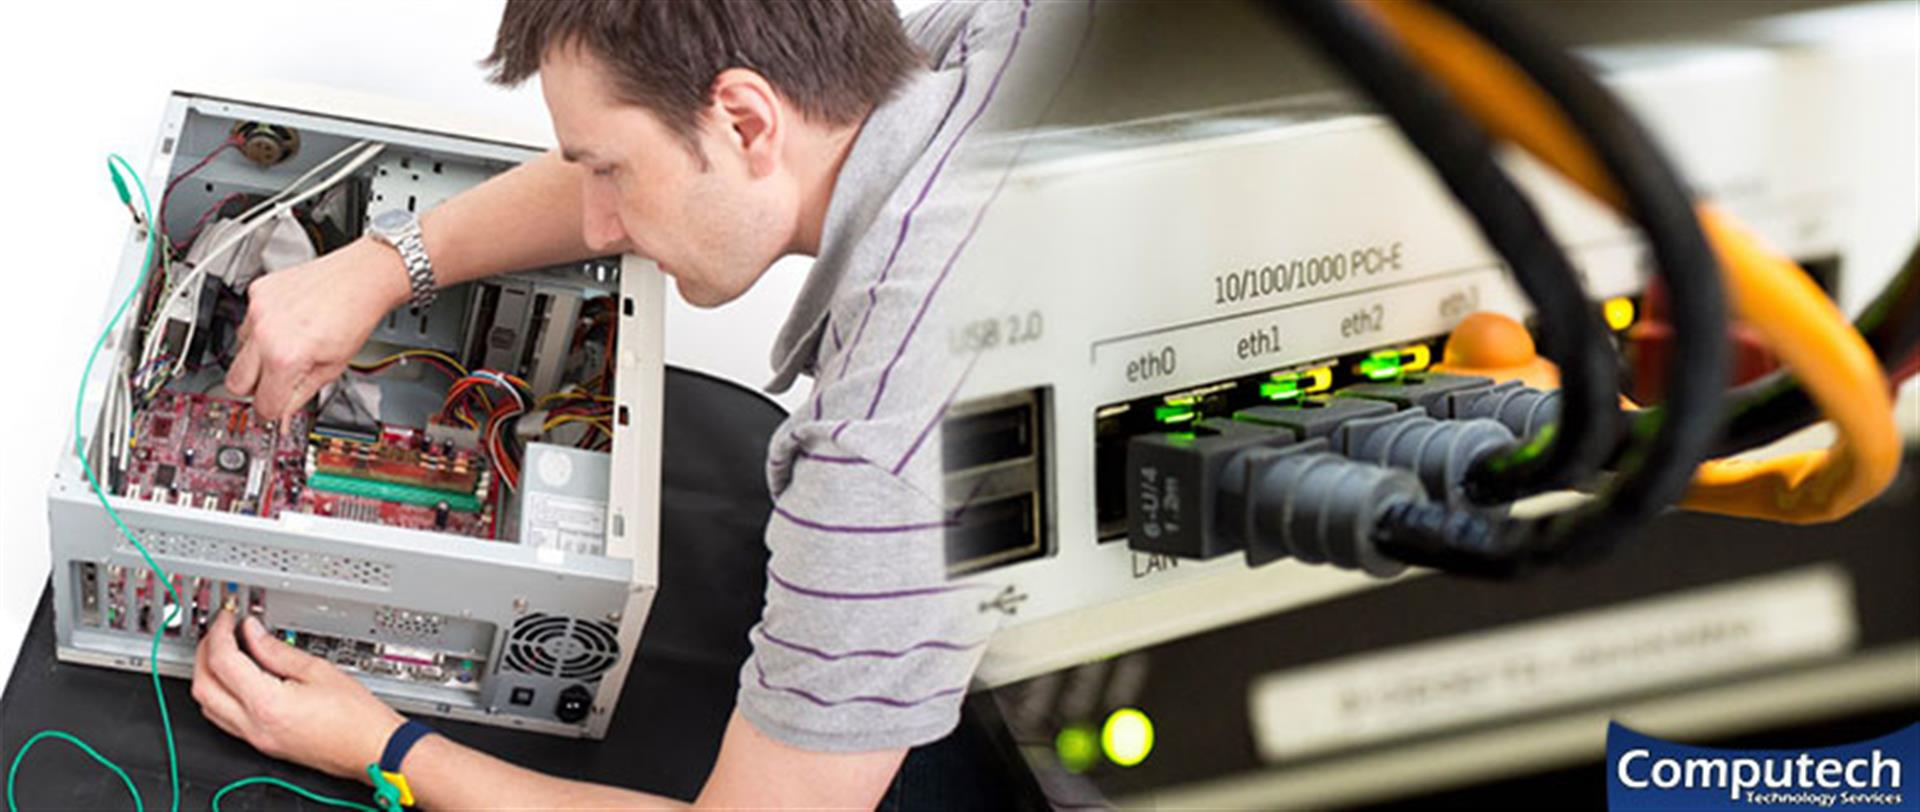 Walden Tennessee Onsite Computer & Printer Repairs, Network, Voice & Data Cabling Services